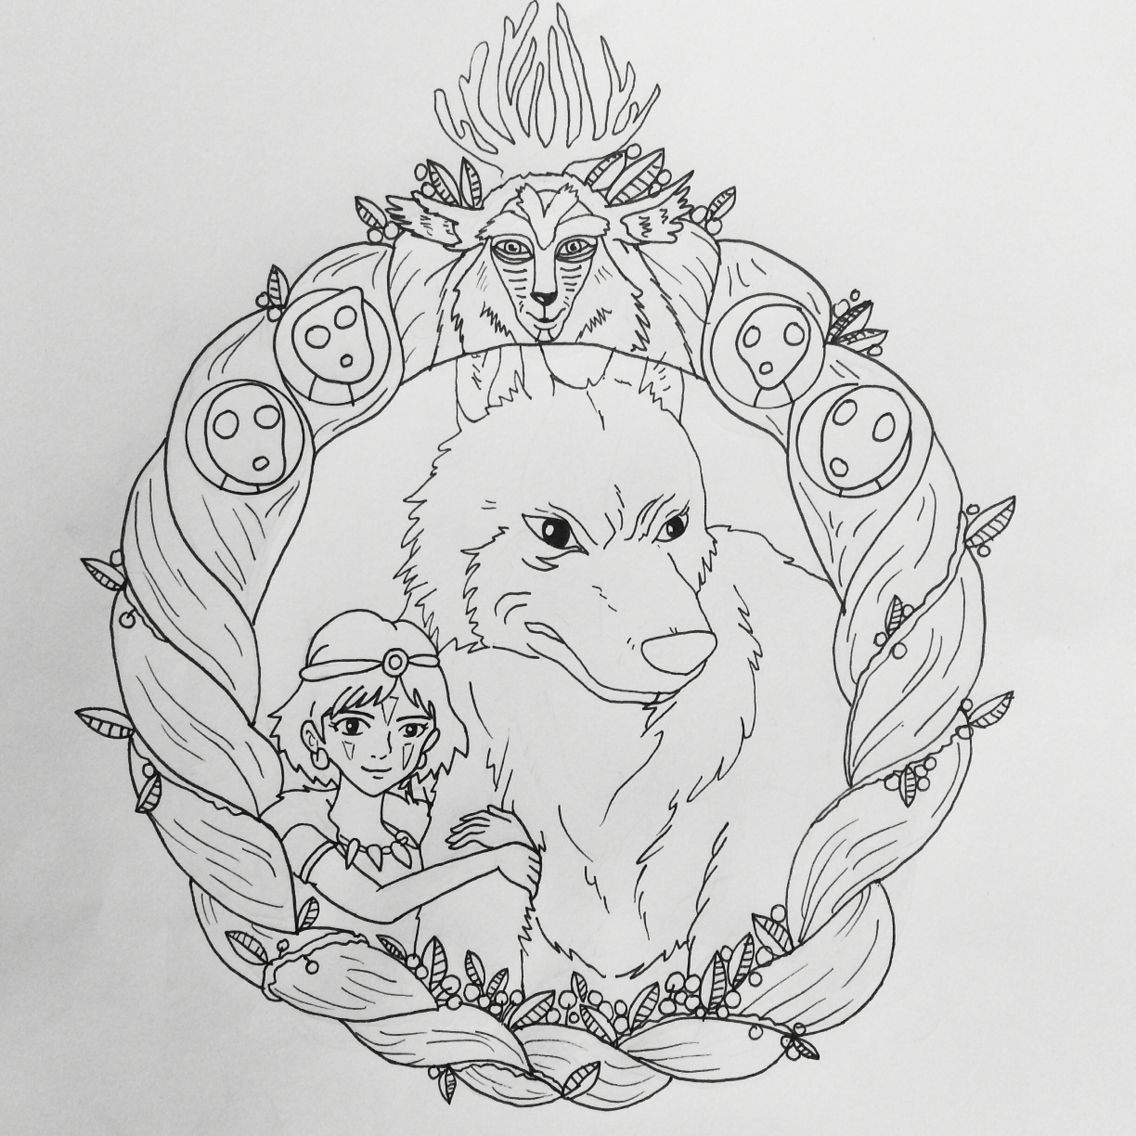 Princess Mononoke tattoo outline | Dövme vs | Pinterest ...